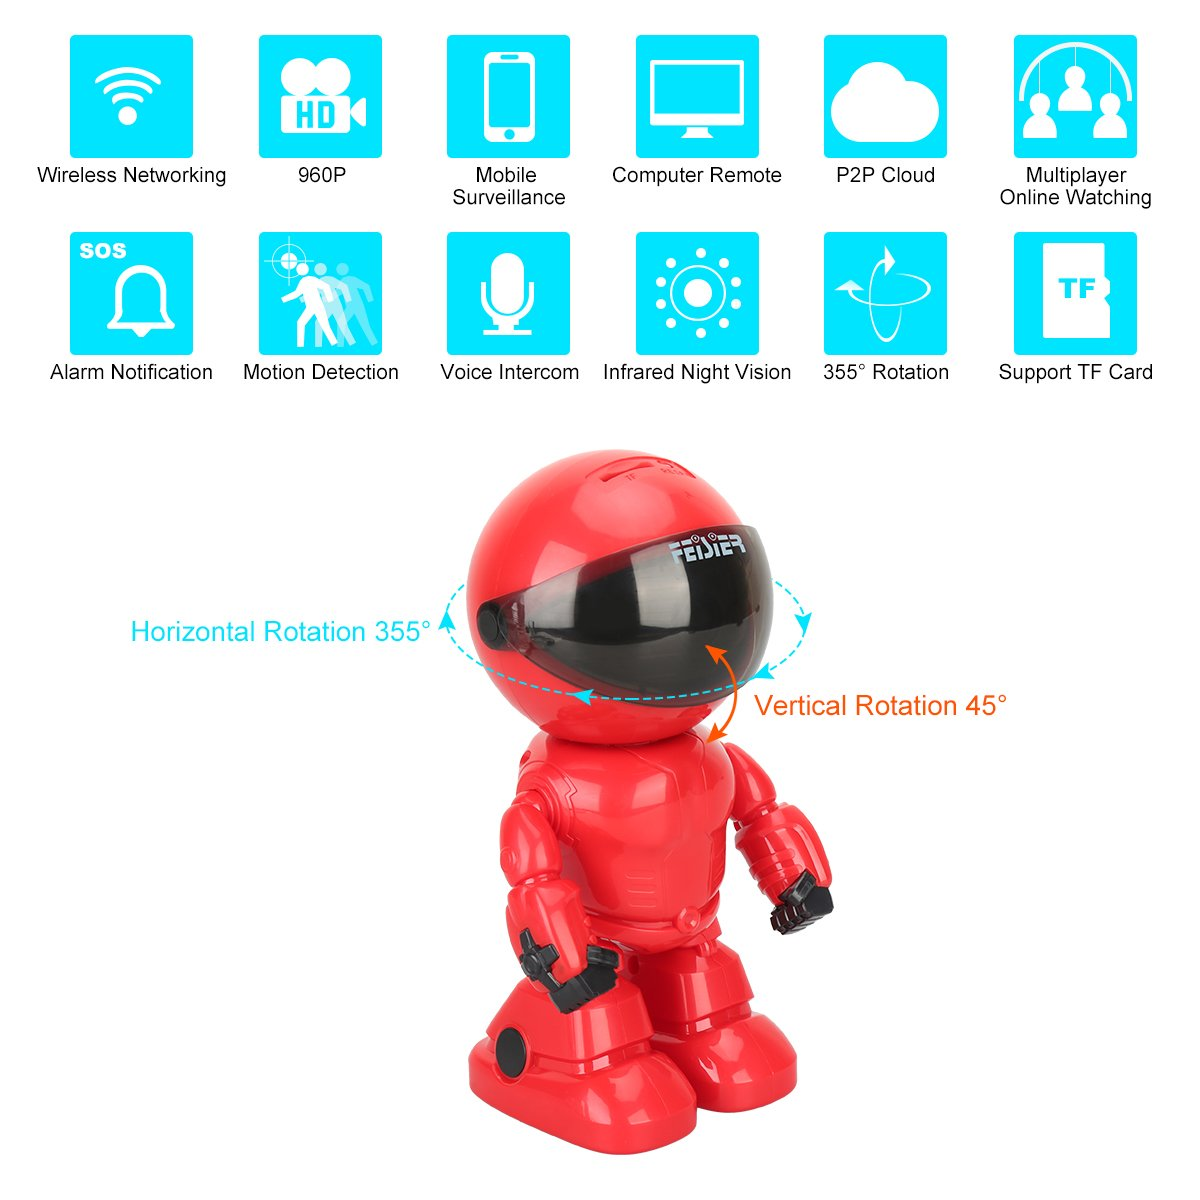 HD Wireless Robot IP Camera,FEISIER 960P Security Camera 1.3MP CMOS Baby Monitor Pan Tilt Remote Home Security P2P IR Night Vision for Mobile Android/iOS and Laptop (Red)